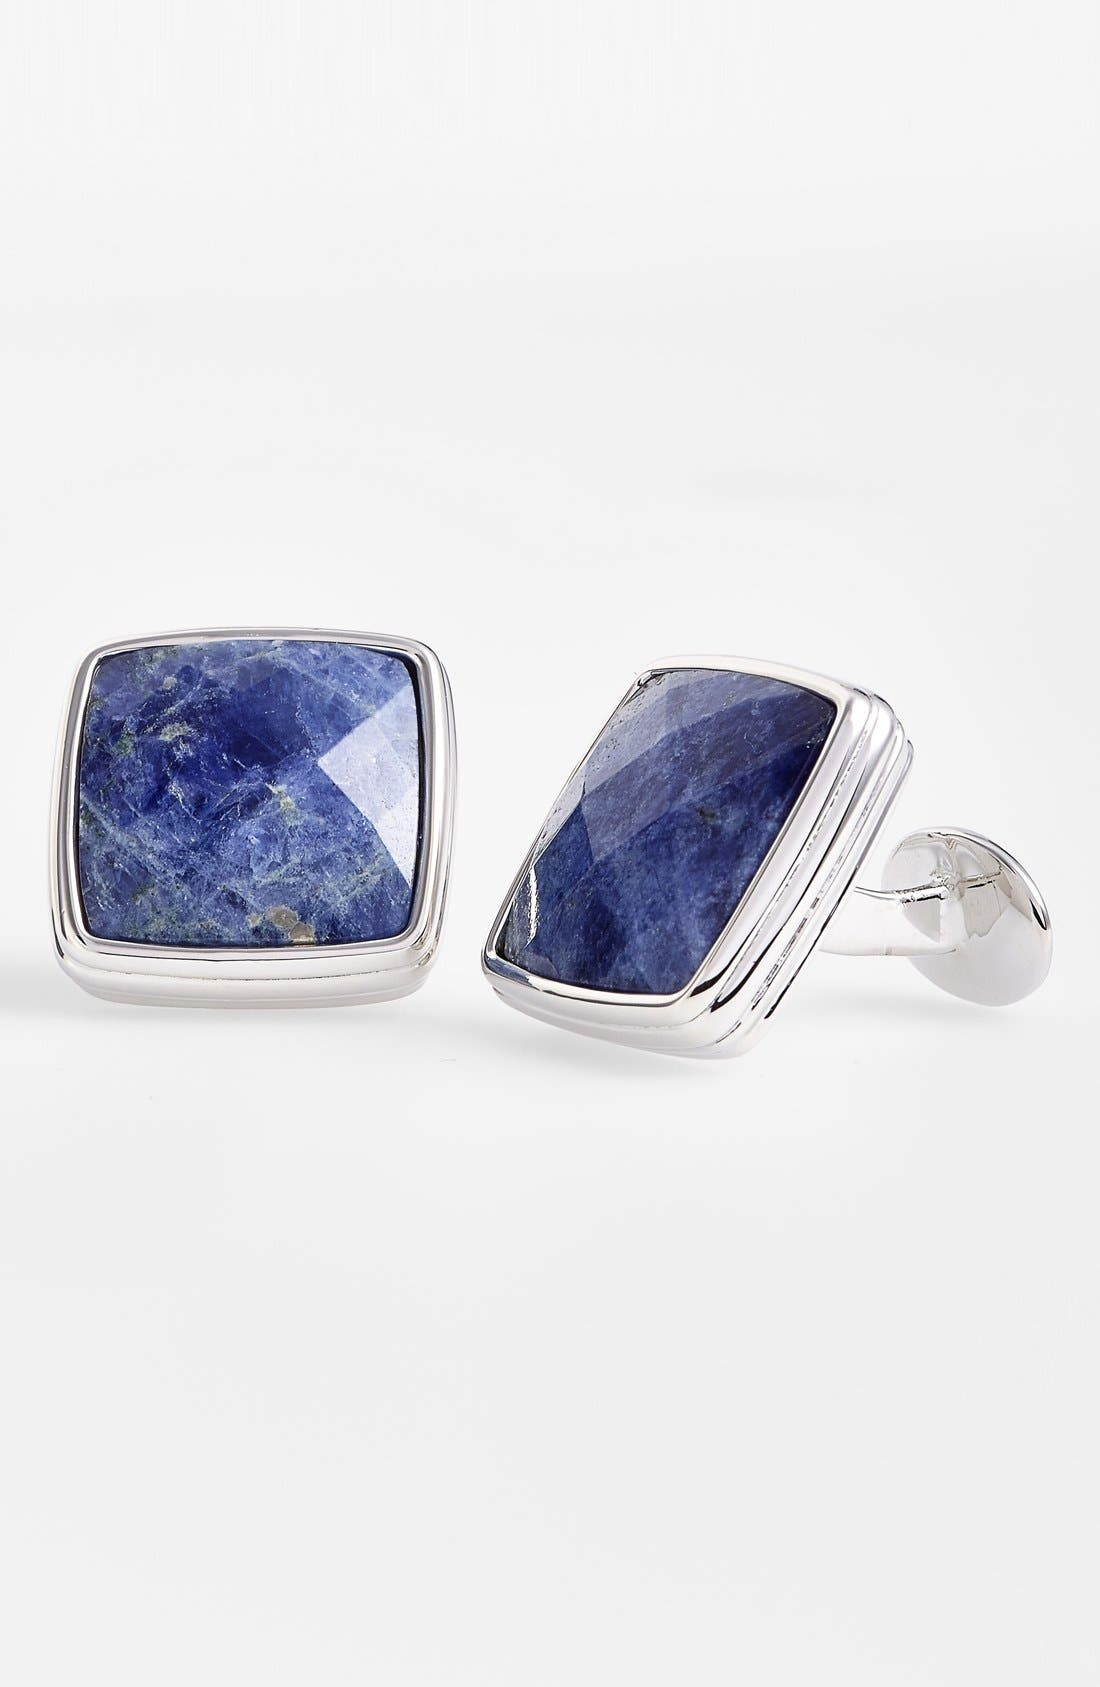 DAVID DONAHUE Semiprecious Stone Cuff Links